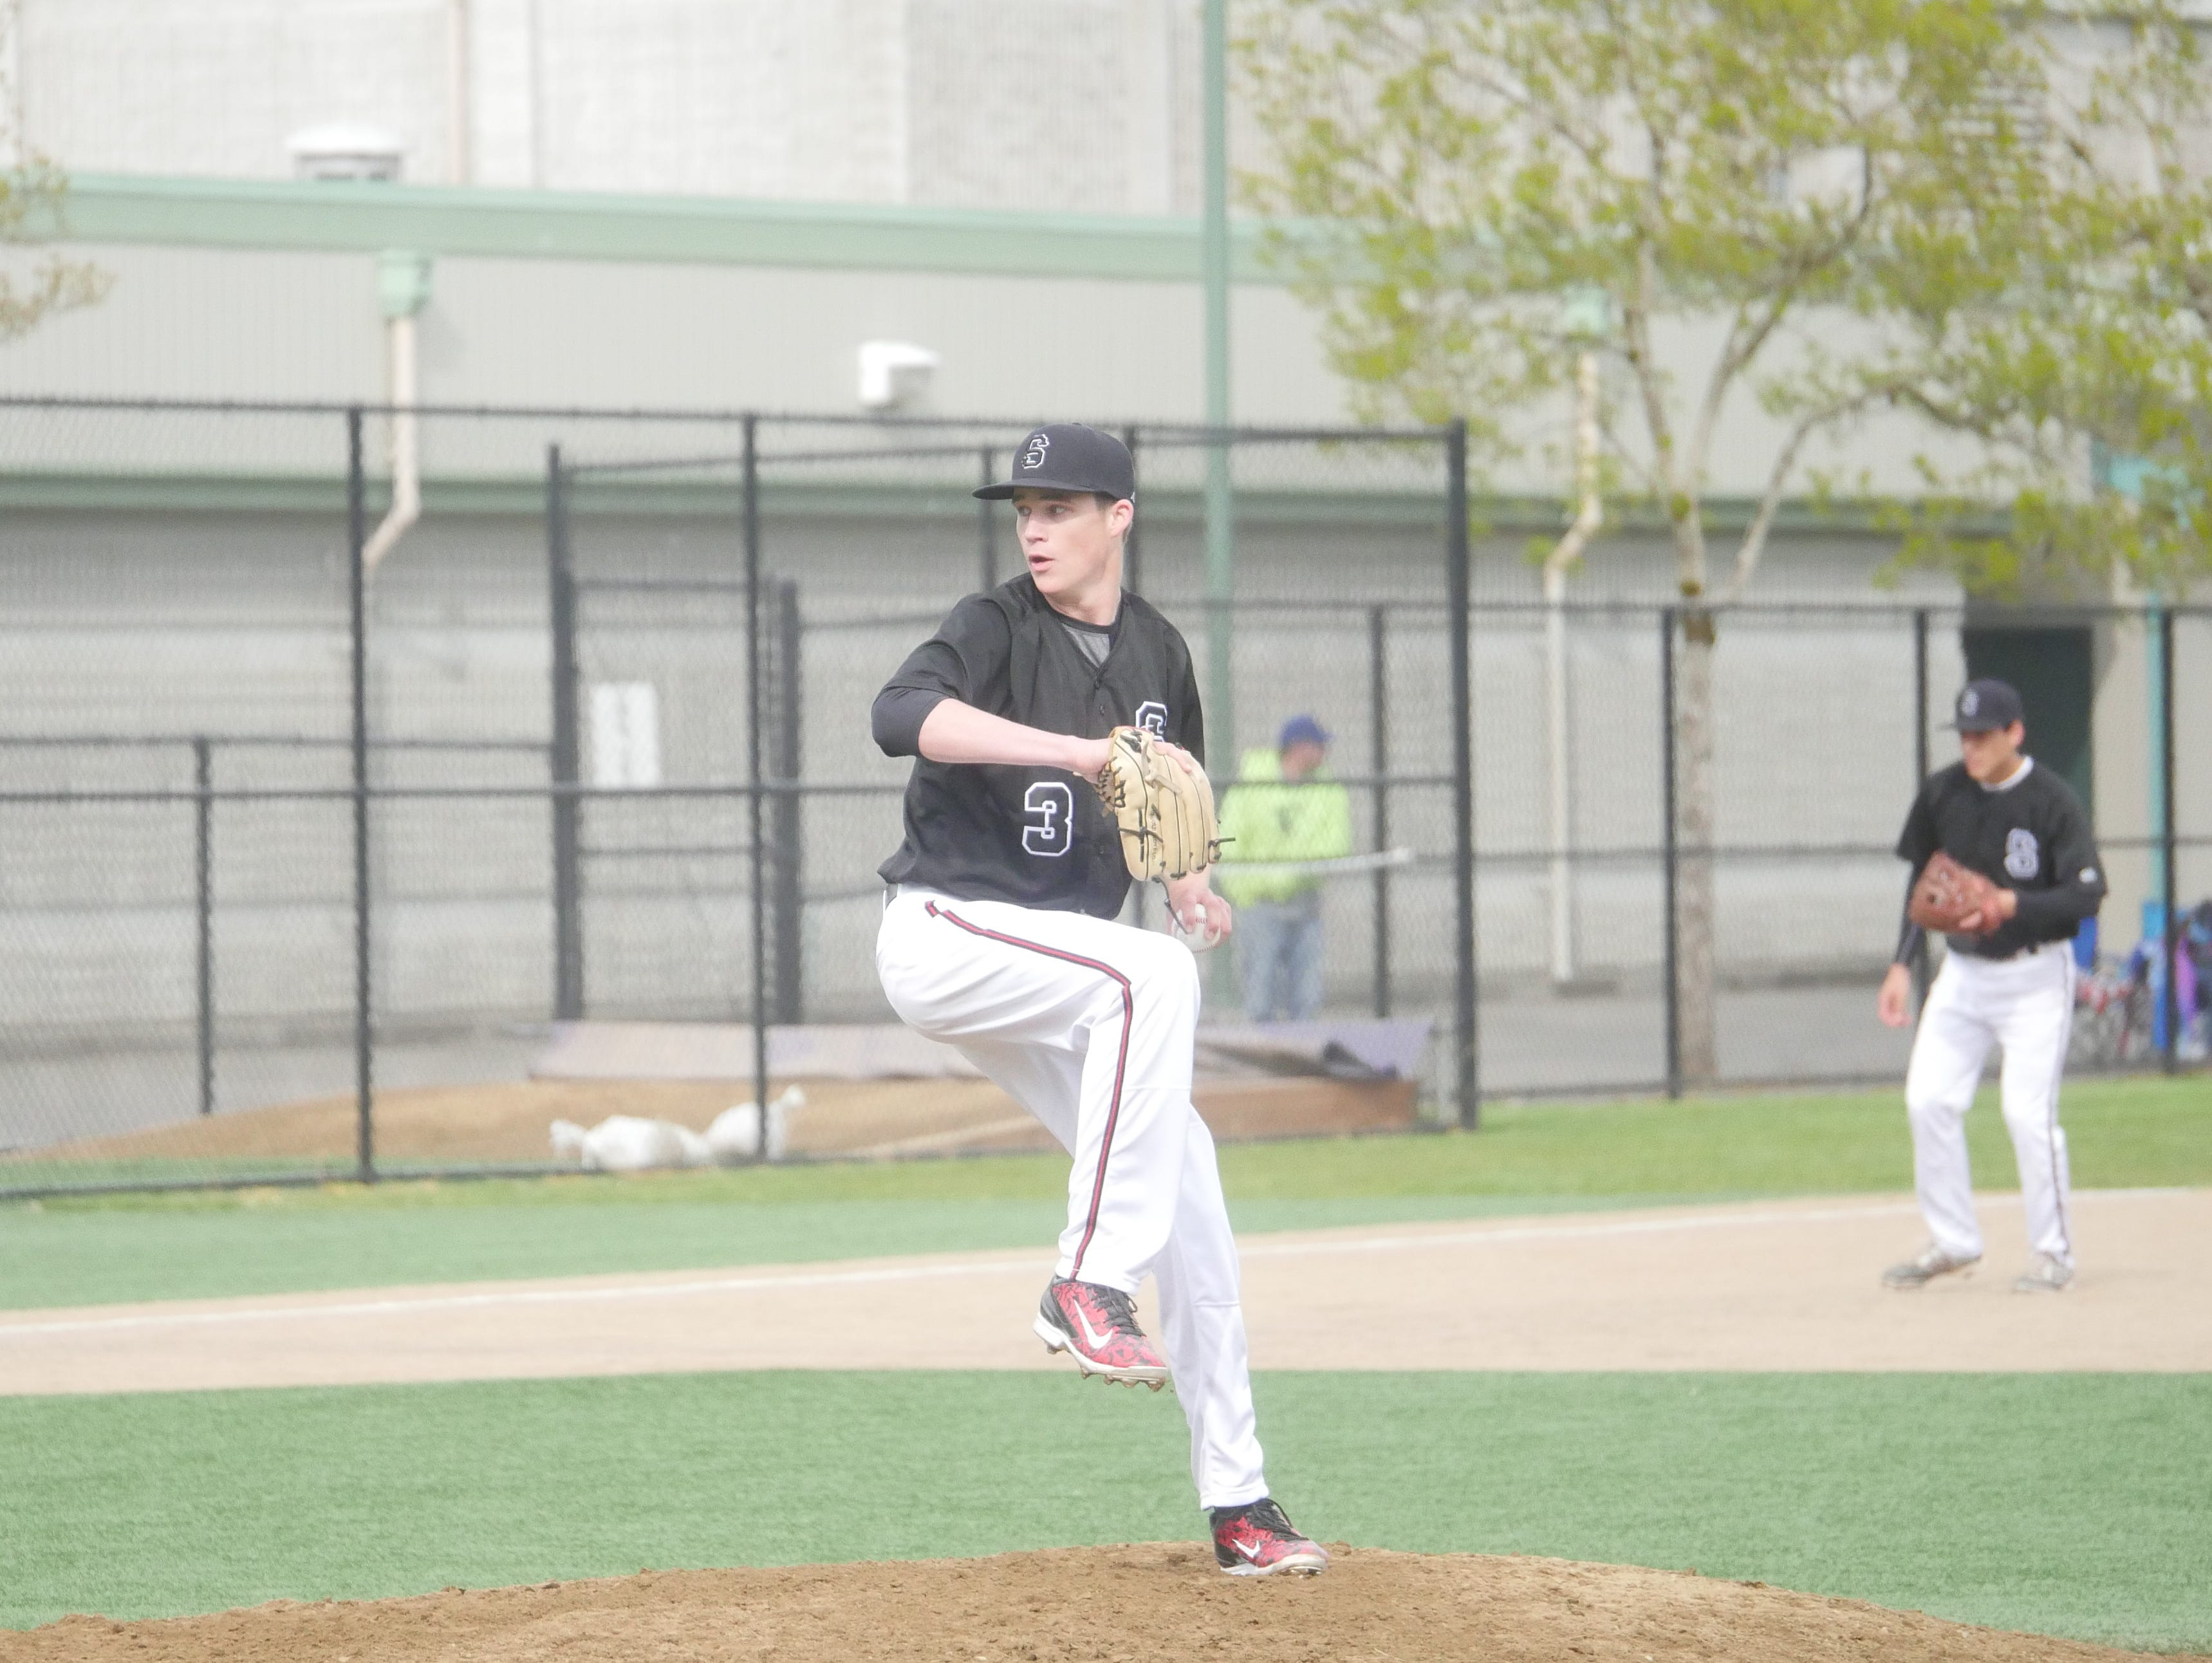 Snohomish pitcher Jake Mulholland tossed a complete game shutout Friday.